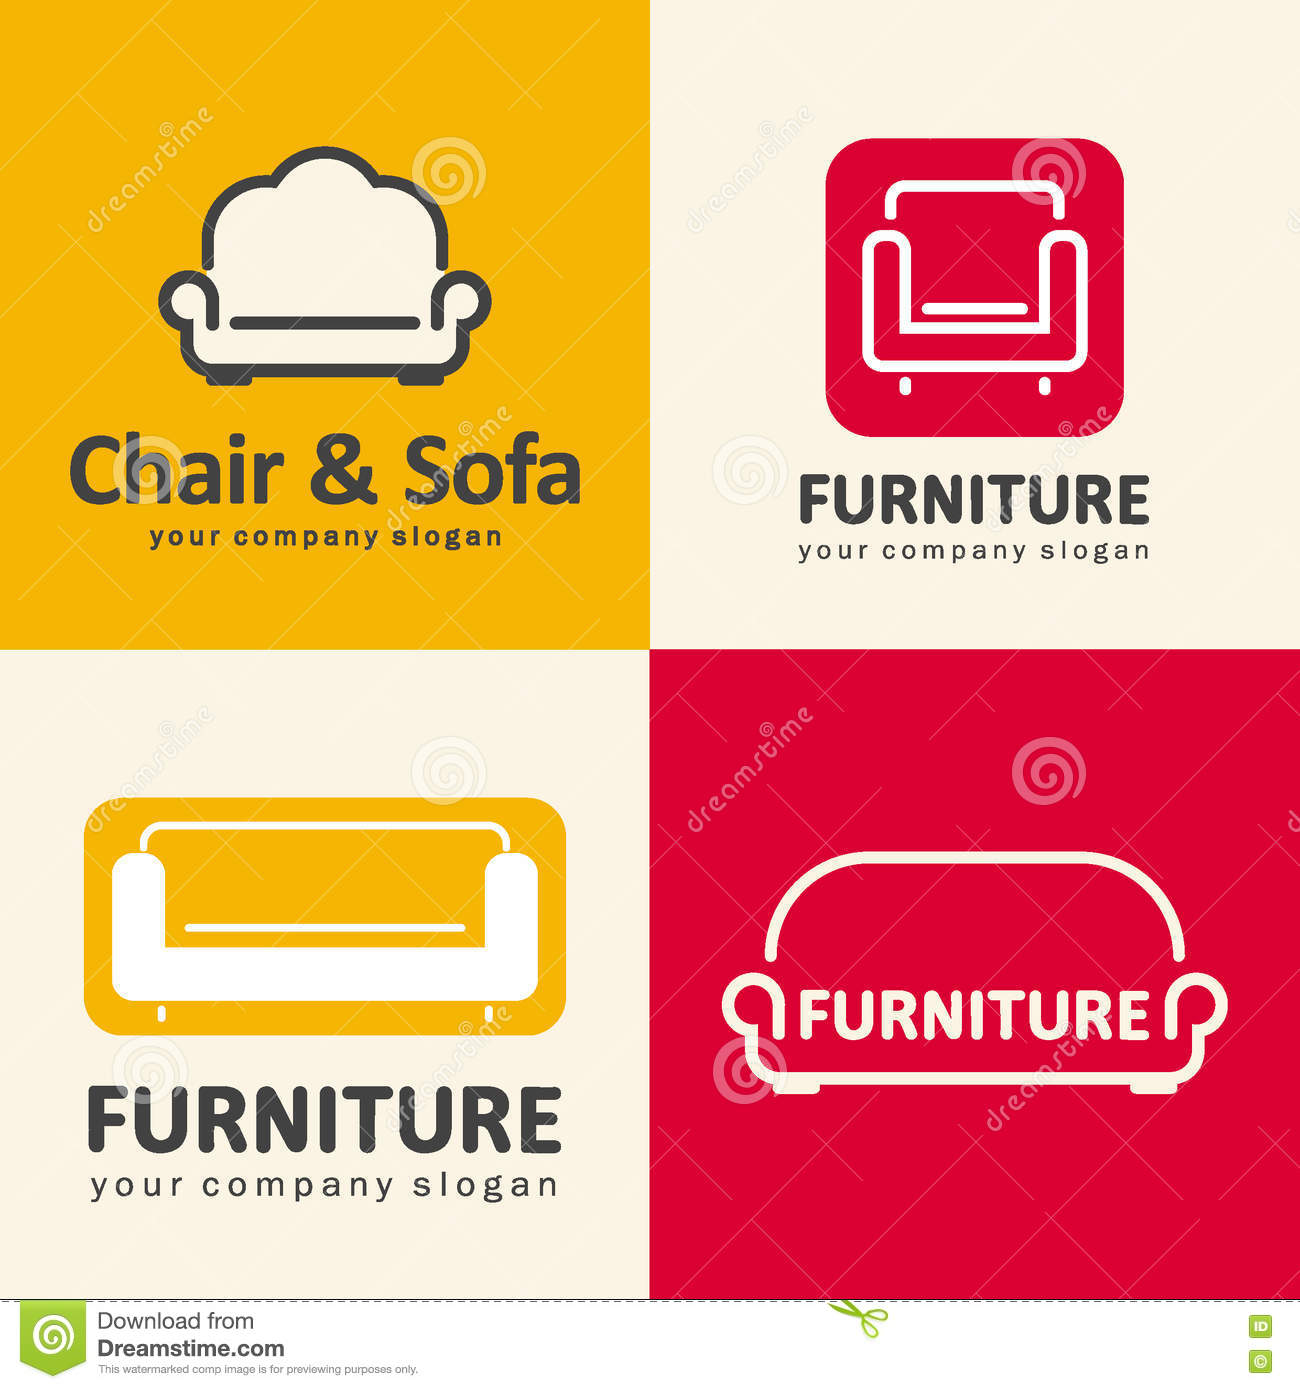 Furniture logo vector free download - Logos For Furniture Store Sofa And Chair Icons